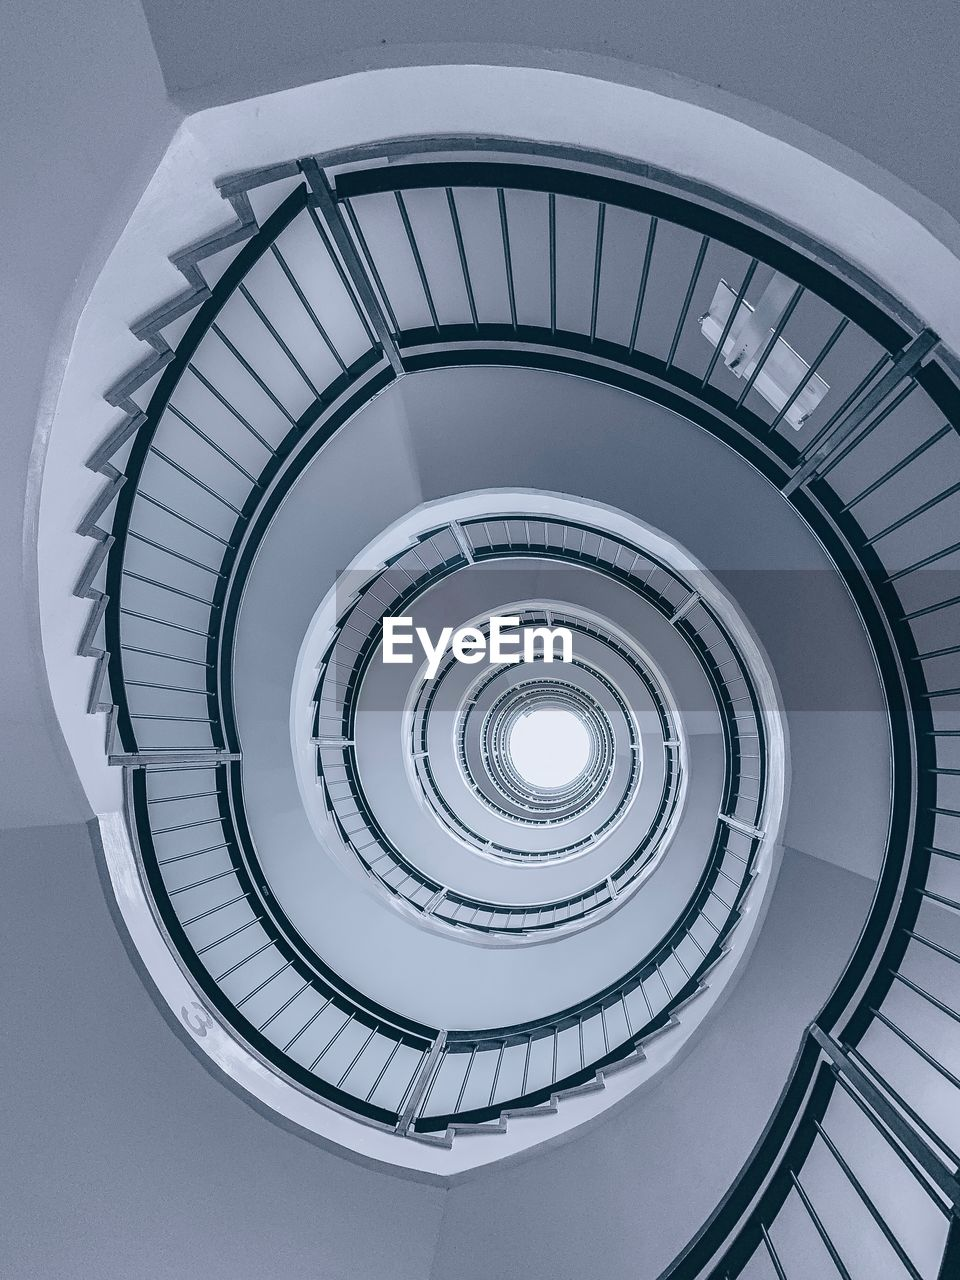 spiral, staircase, architecture, built structure, steps and staircases, railing, spiral staircase, low angle view, shape, directly below, geometric shape, pattern, design, no people, circle, indoors, diminishing perspective, day, architectural feature, building, ceiling, concentric